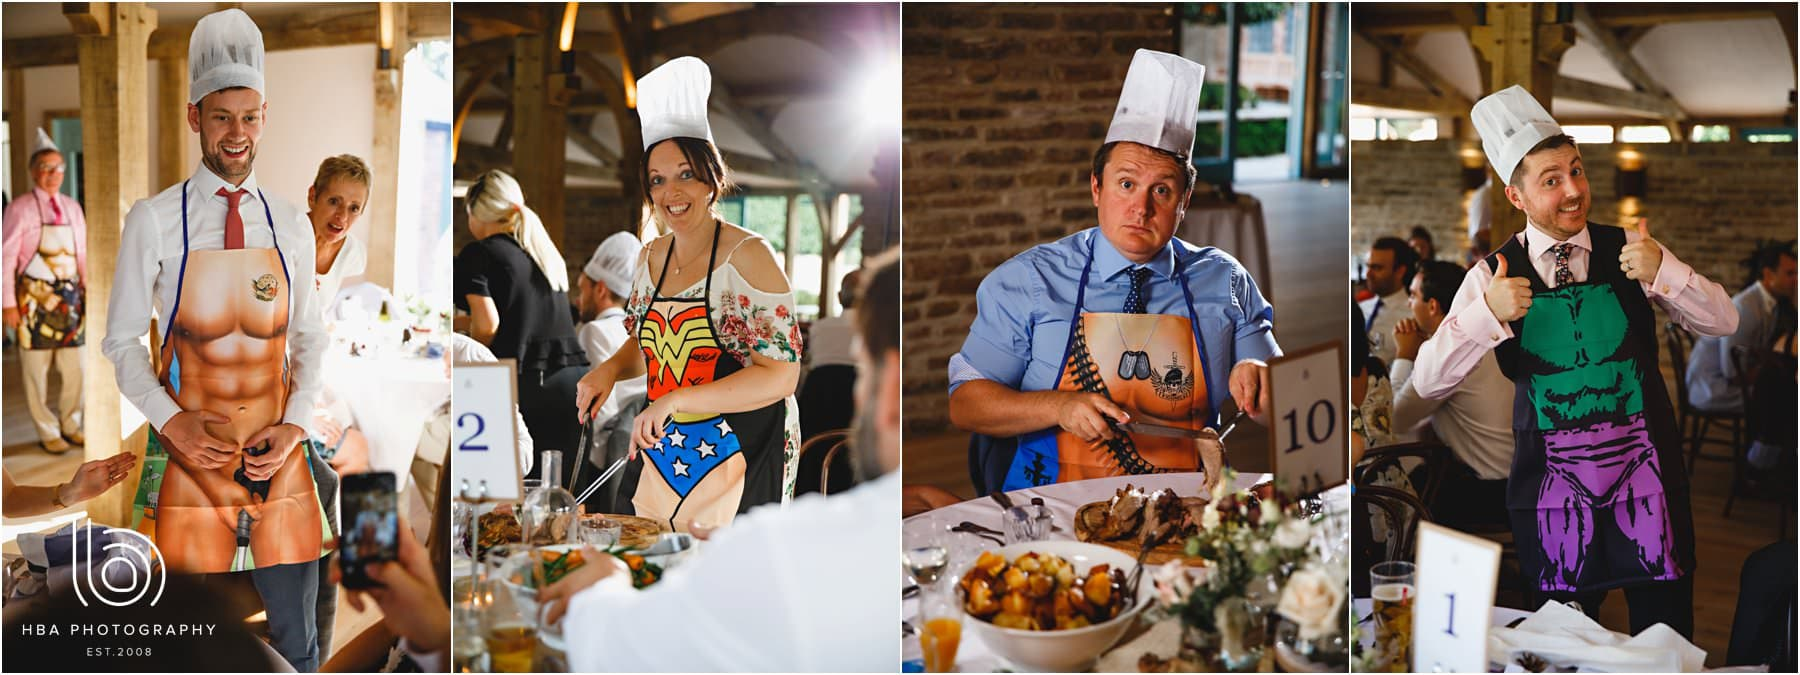 the guests in silly aprons serving dinner